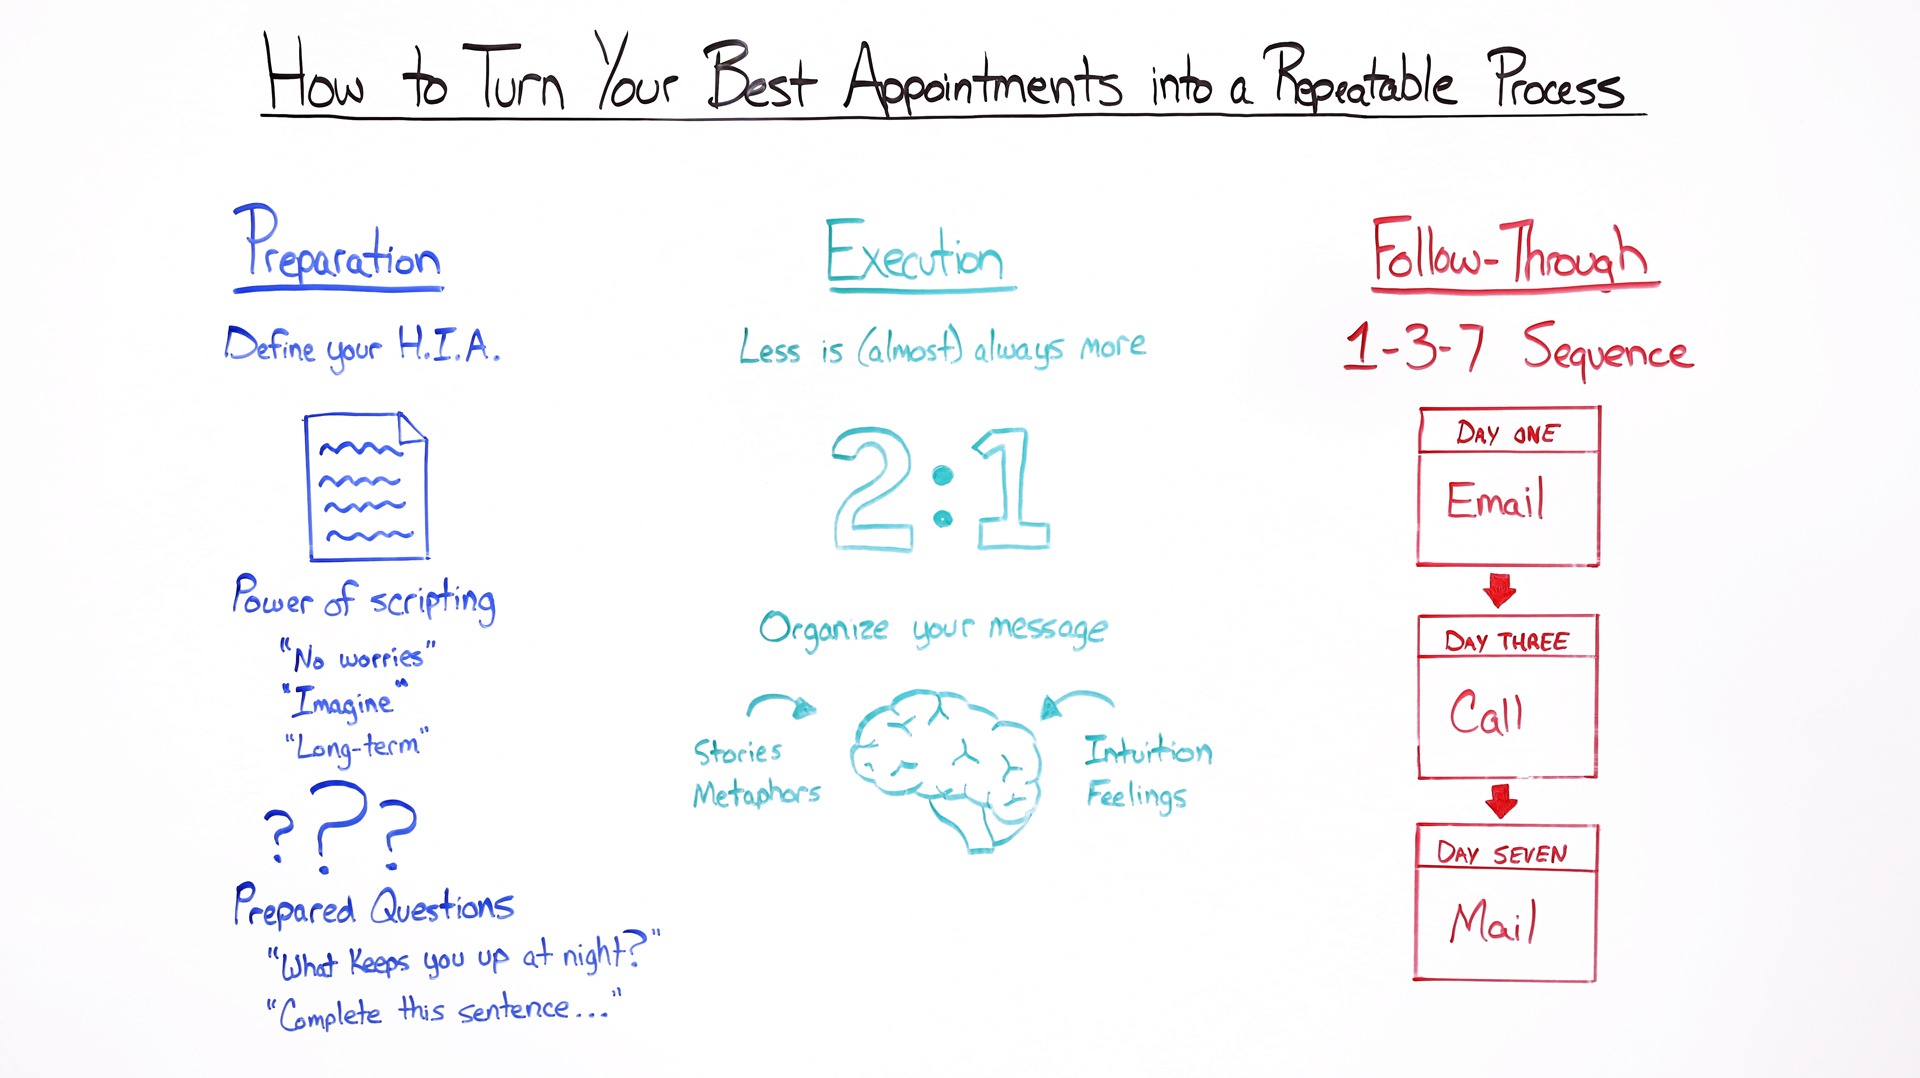 How to Turn Your Best Appointments into a Repeatable Process - High Impact Appointments